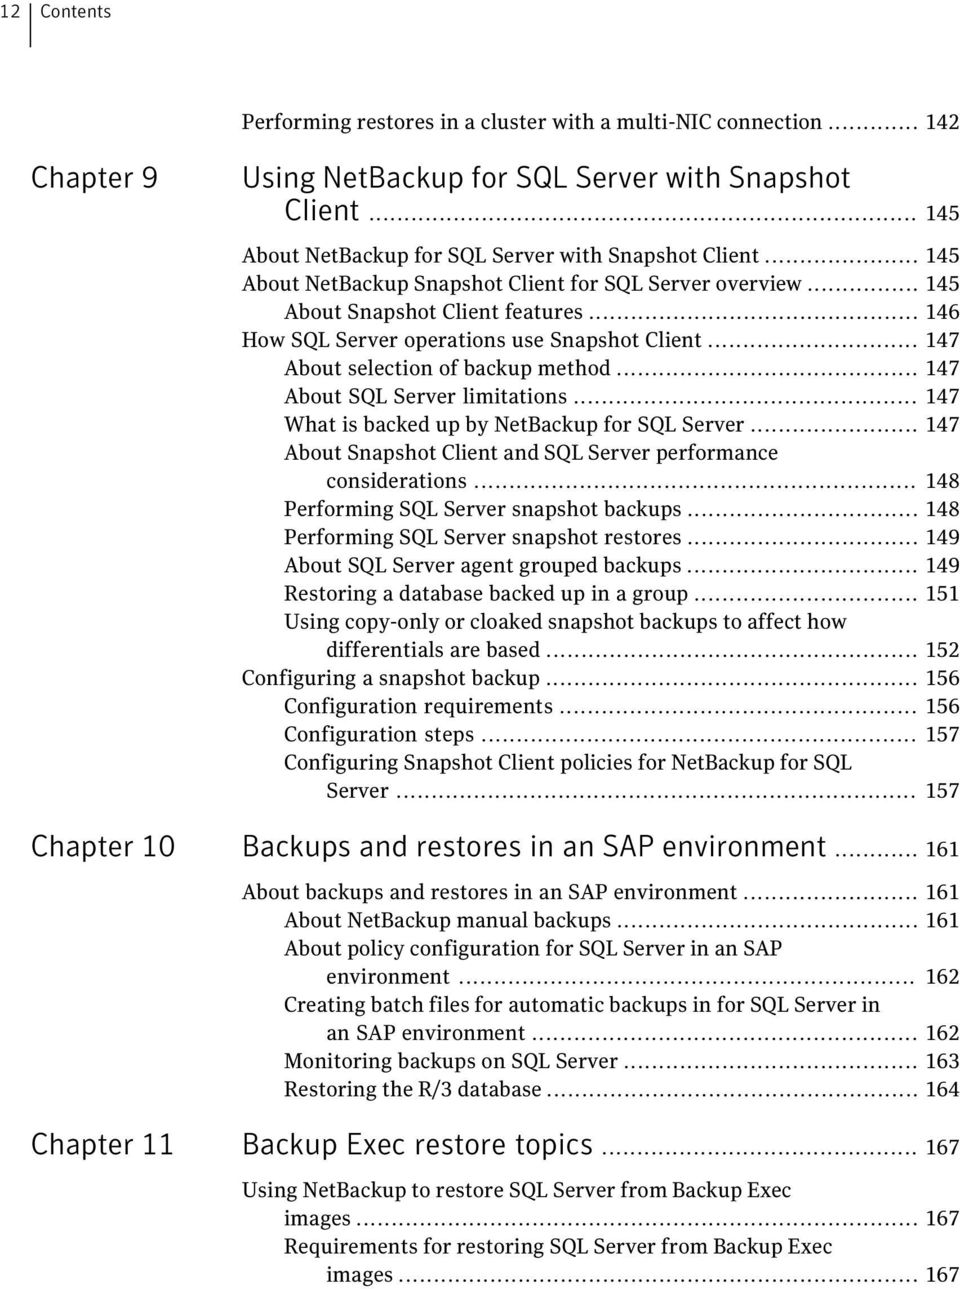 .. 147 About SQL Server limitations... 147 What is backed up by NetBackup for SQL Server... 147 About Snapshot Client and SQL Server performance considerations.